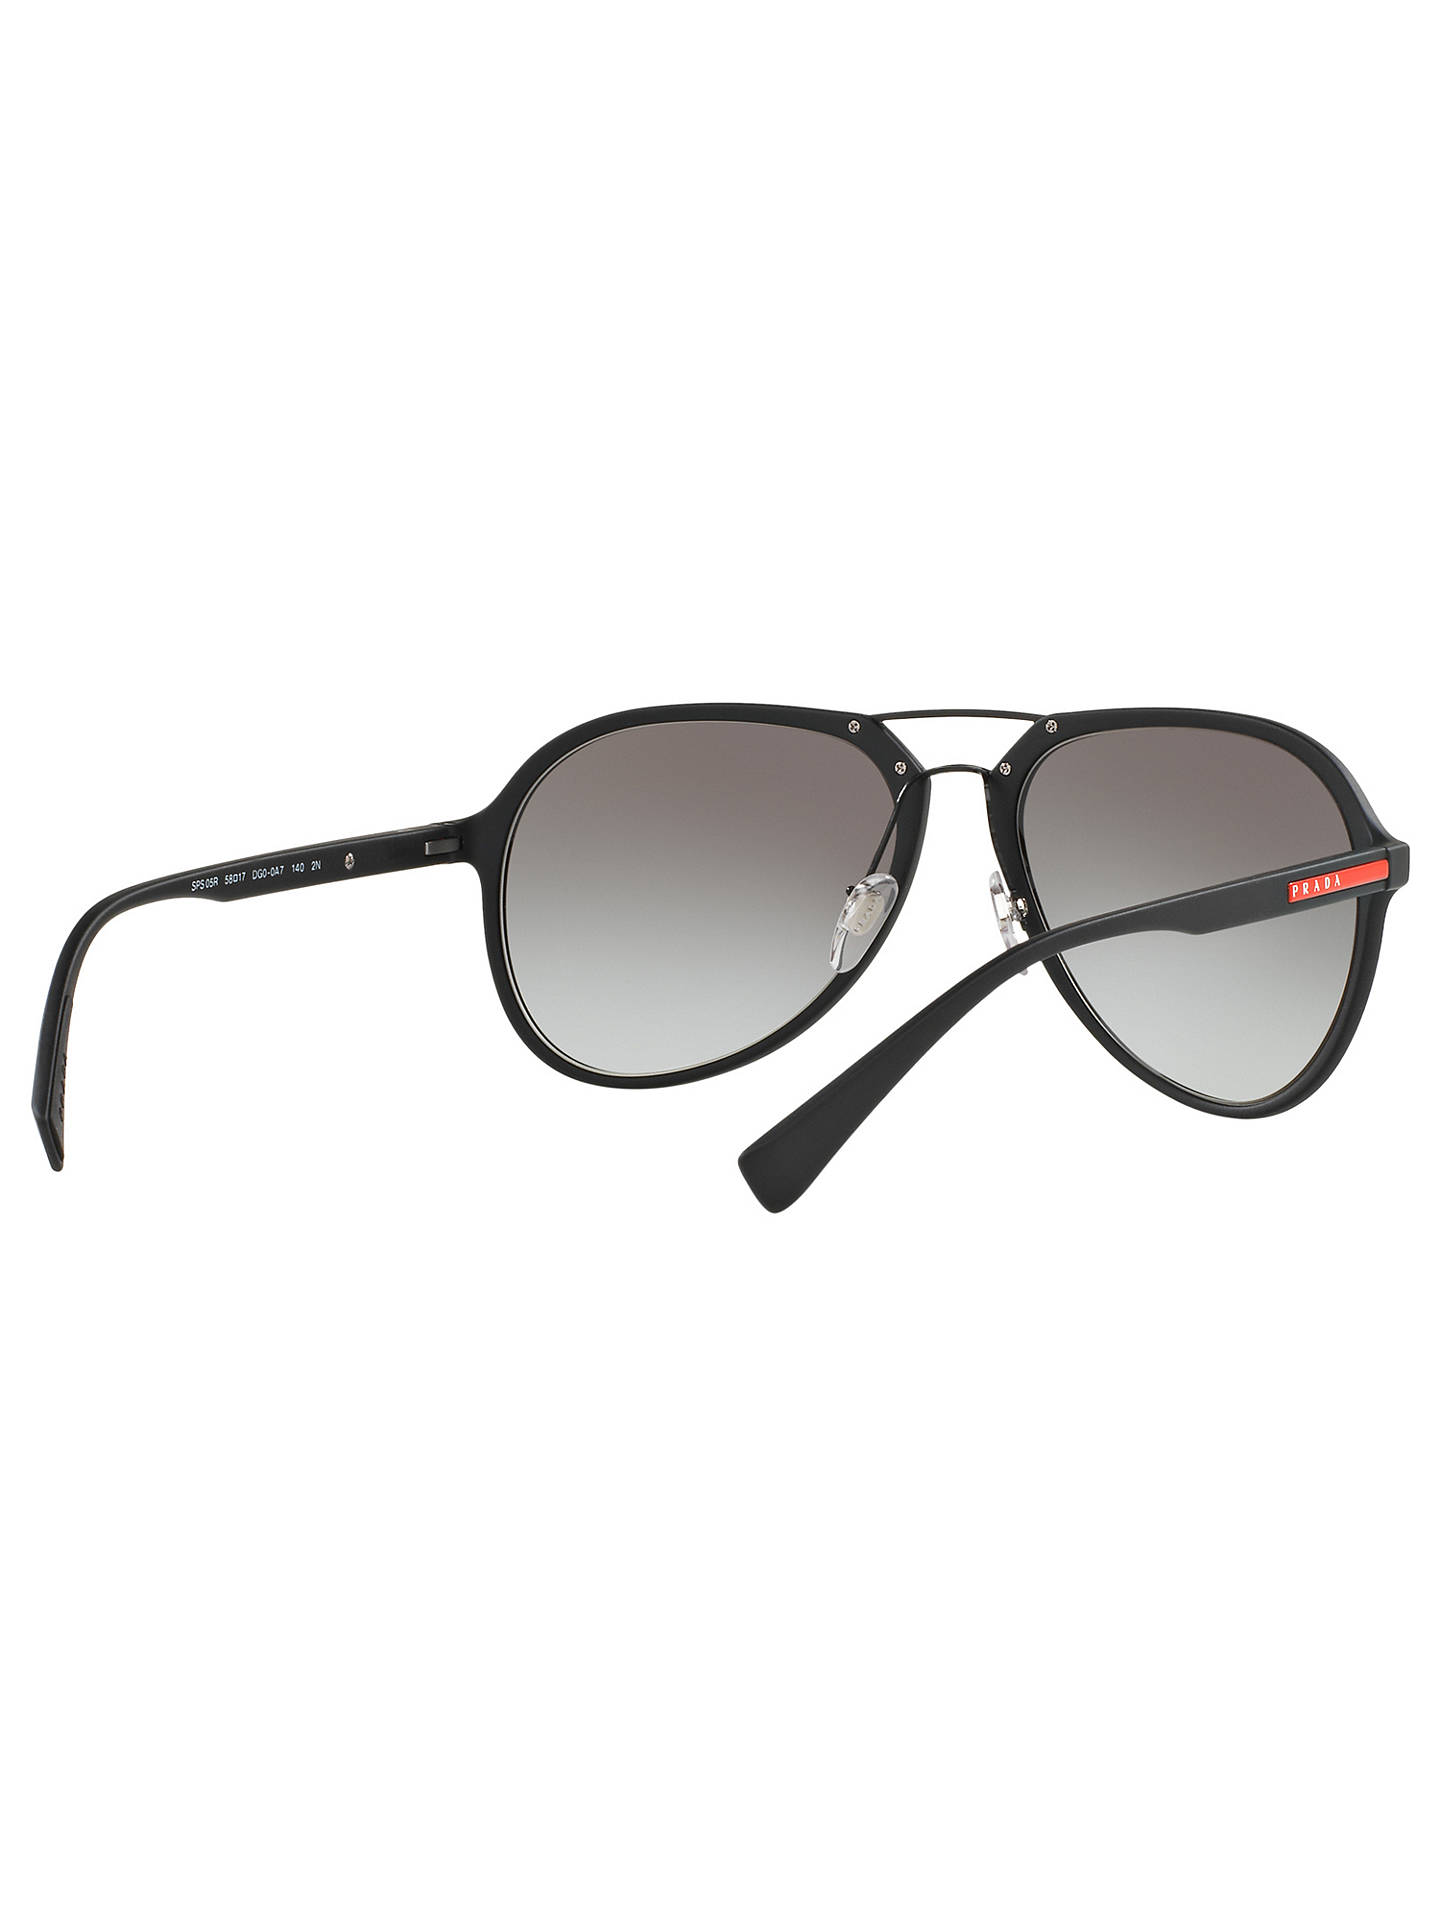 5de308c1aa ... Buy Prada Linea Rossa PS 05RS Aviator Sunglasses